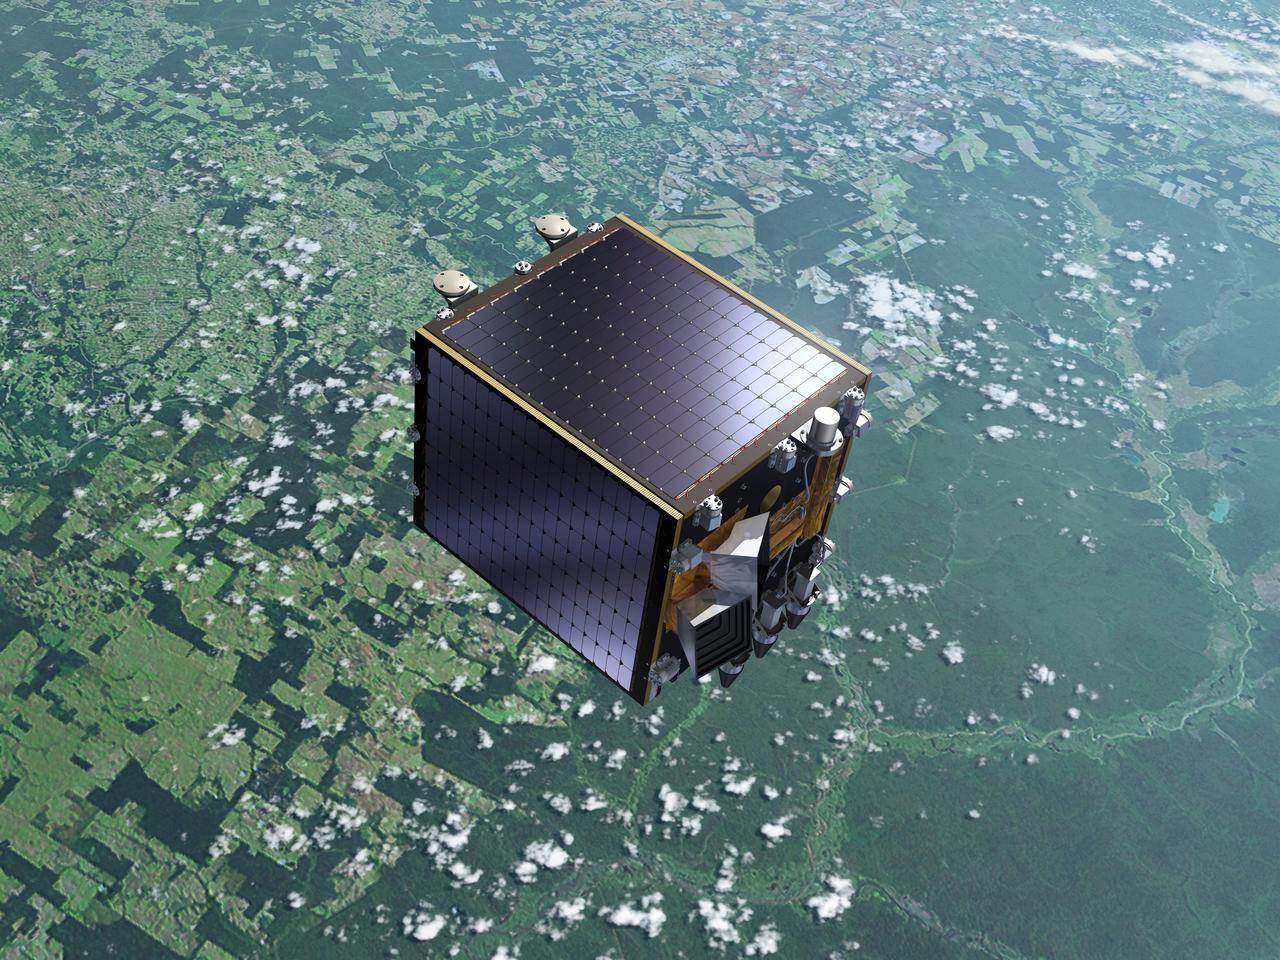 The ESA's Proba-V satellite (Image: ESA)